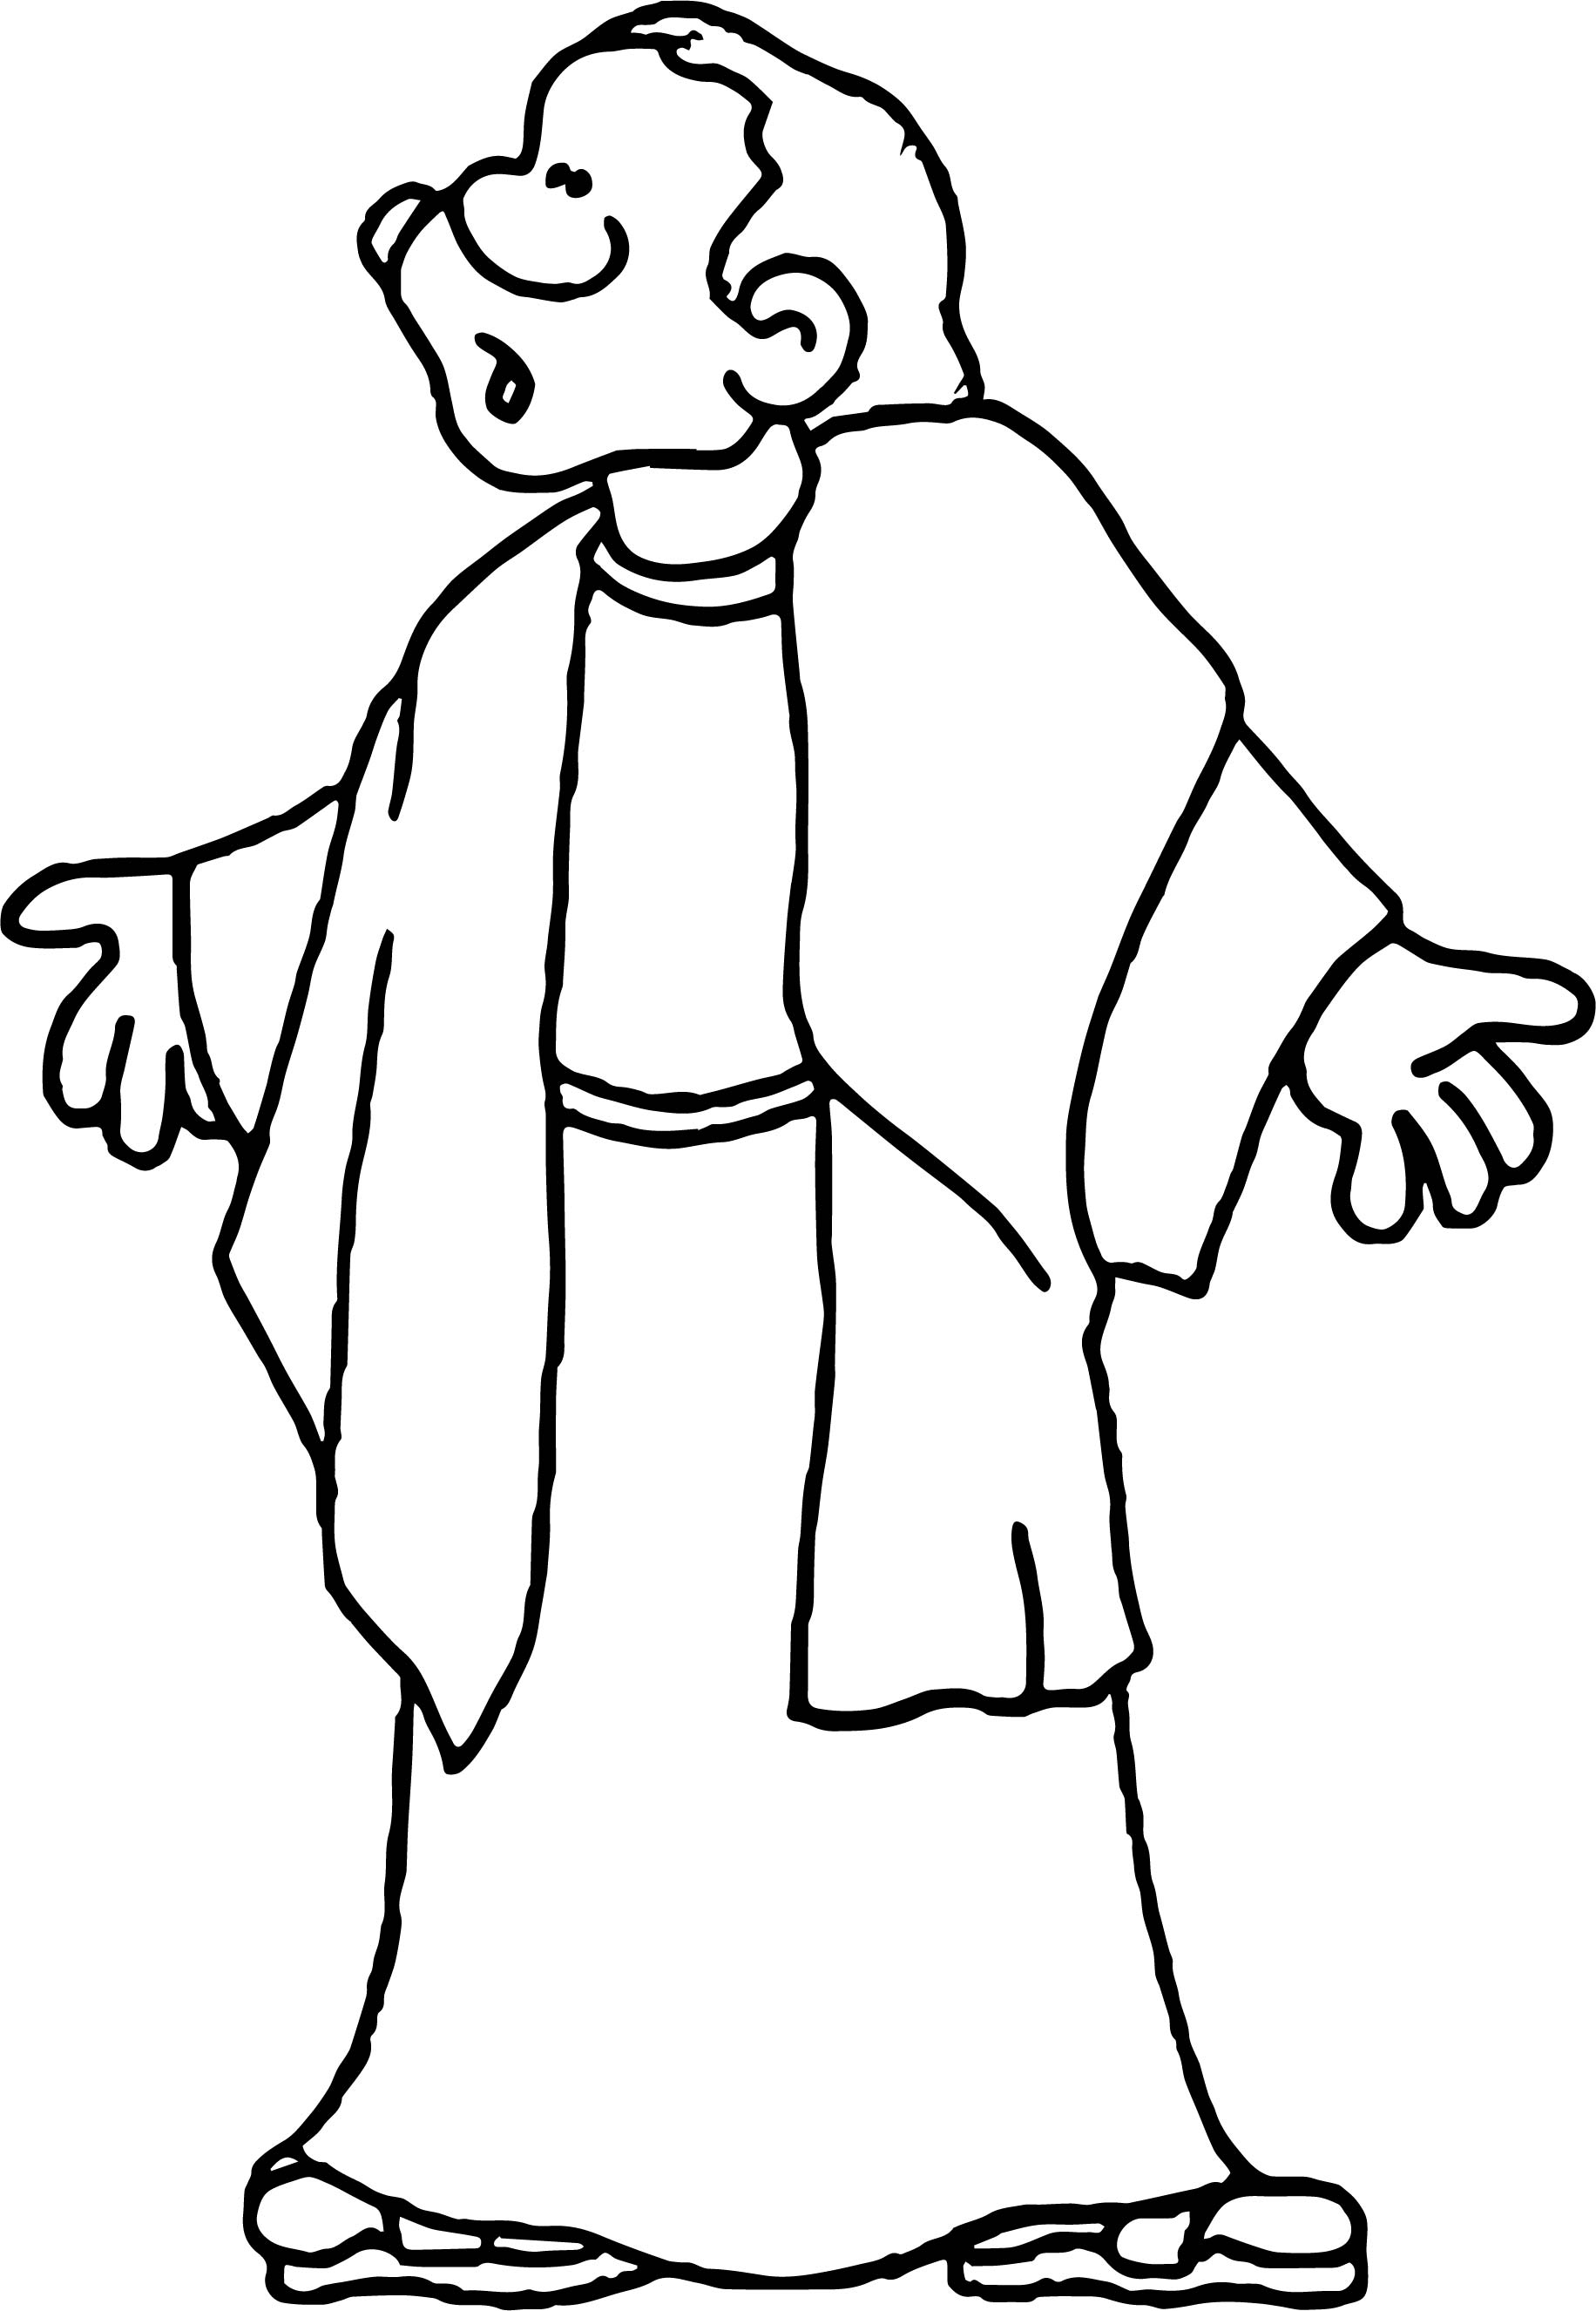 paul the apostle coloring pages - photo#22